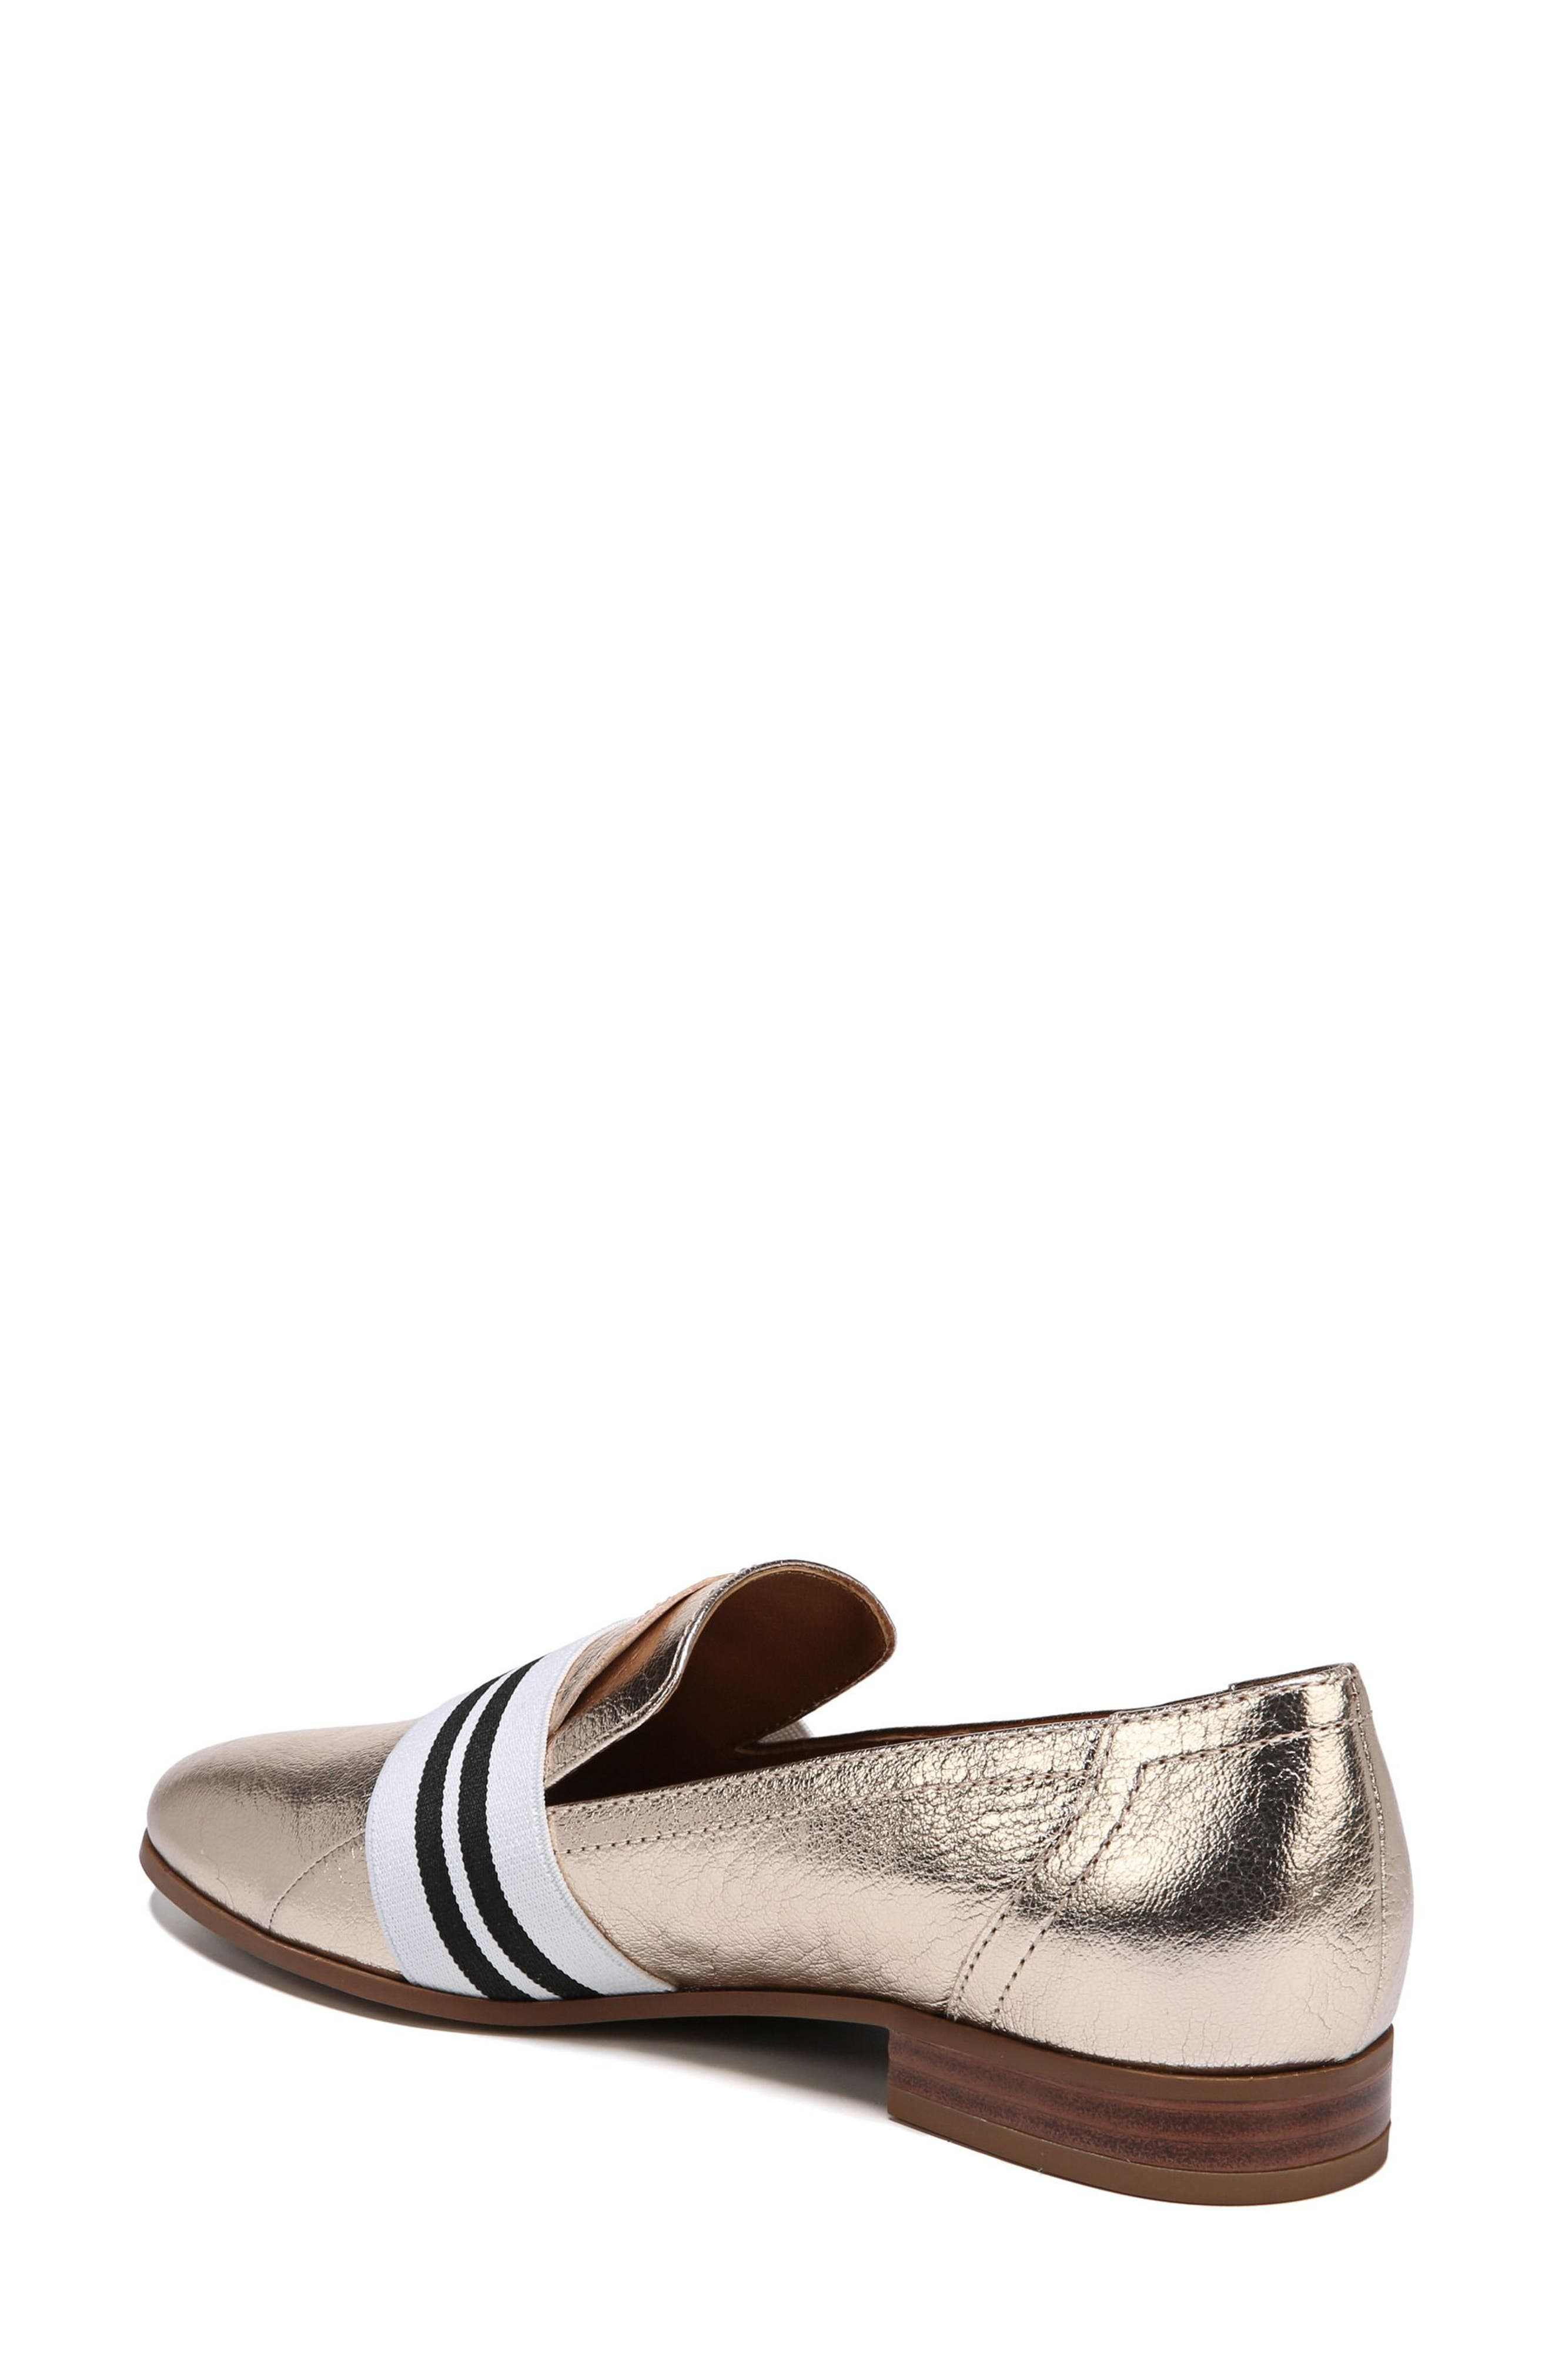 Odyssey Loafer,                             Alternate thumbnail 7, color,                             PLATINO LEATHER